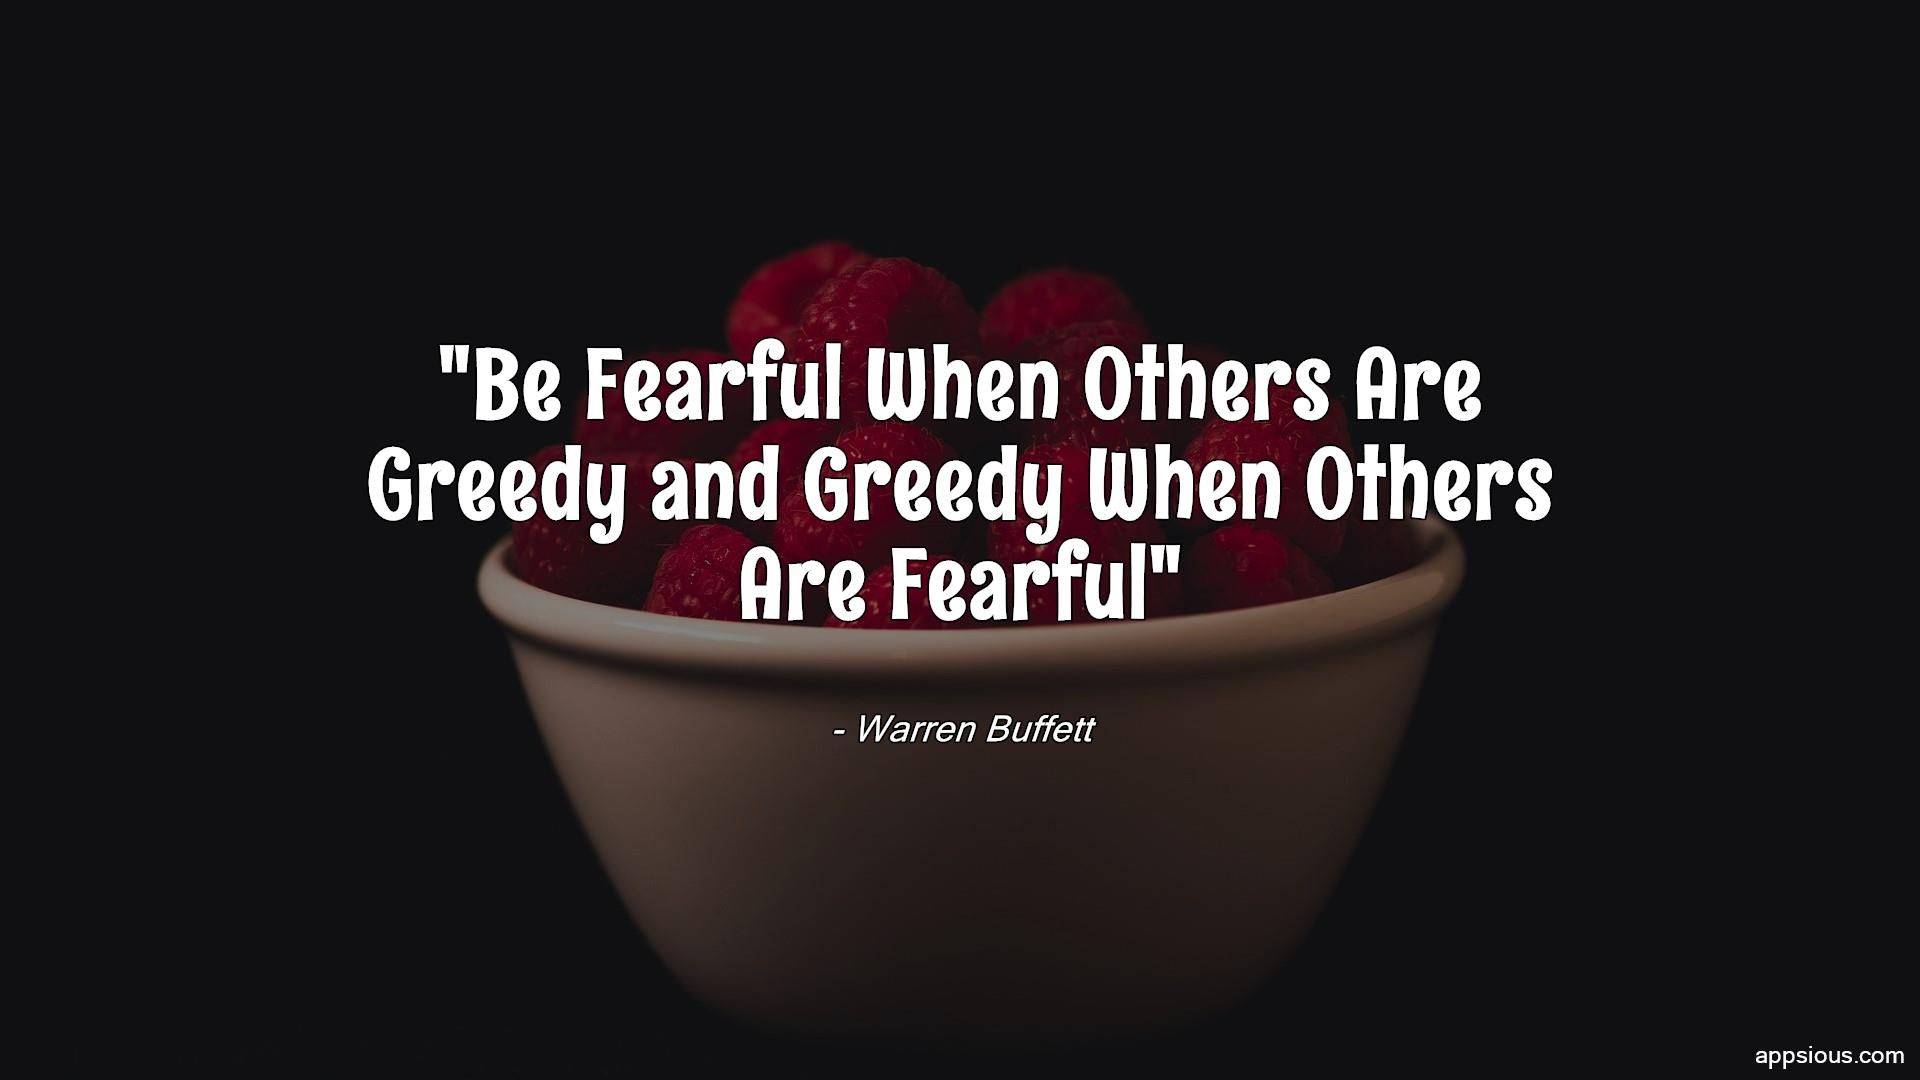 Be Fearful When Others Are Greedy and Greedy When Others Are Fearful